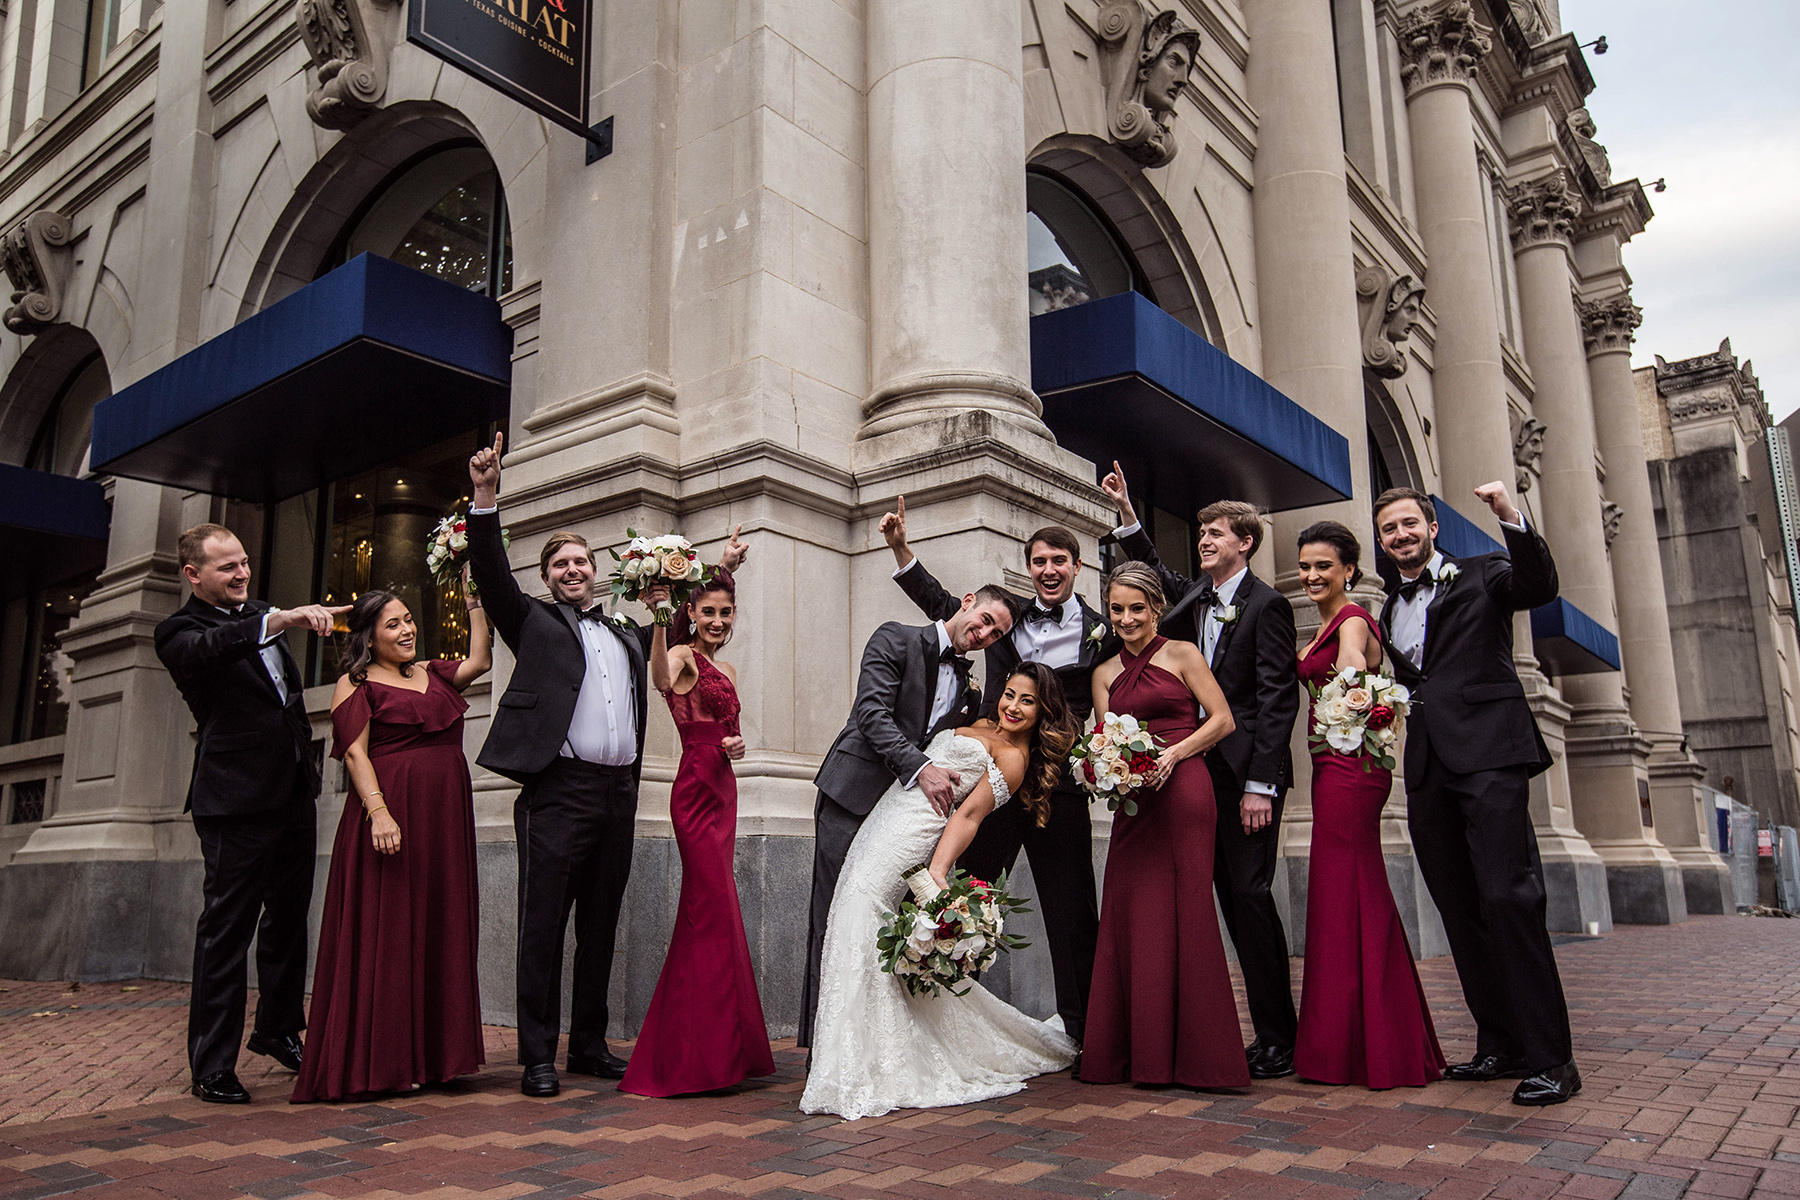 cute wedding party, bridesmaids and grooms men